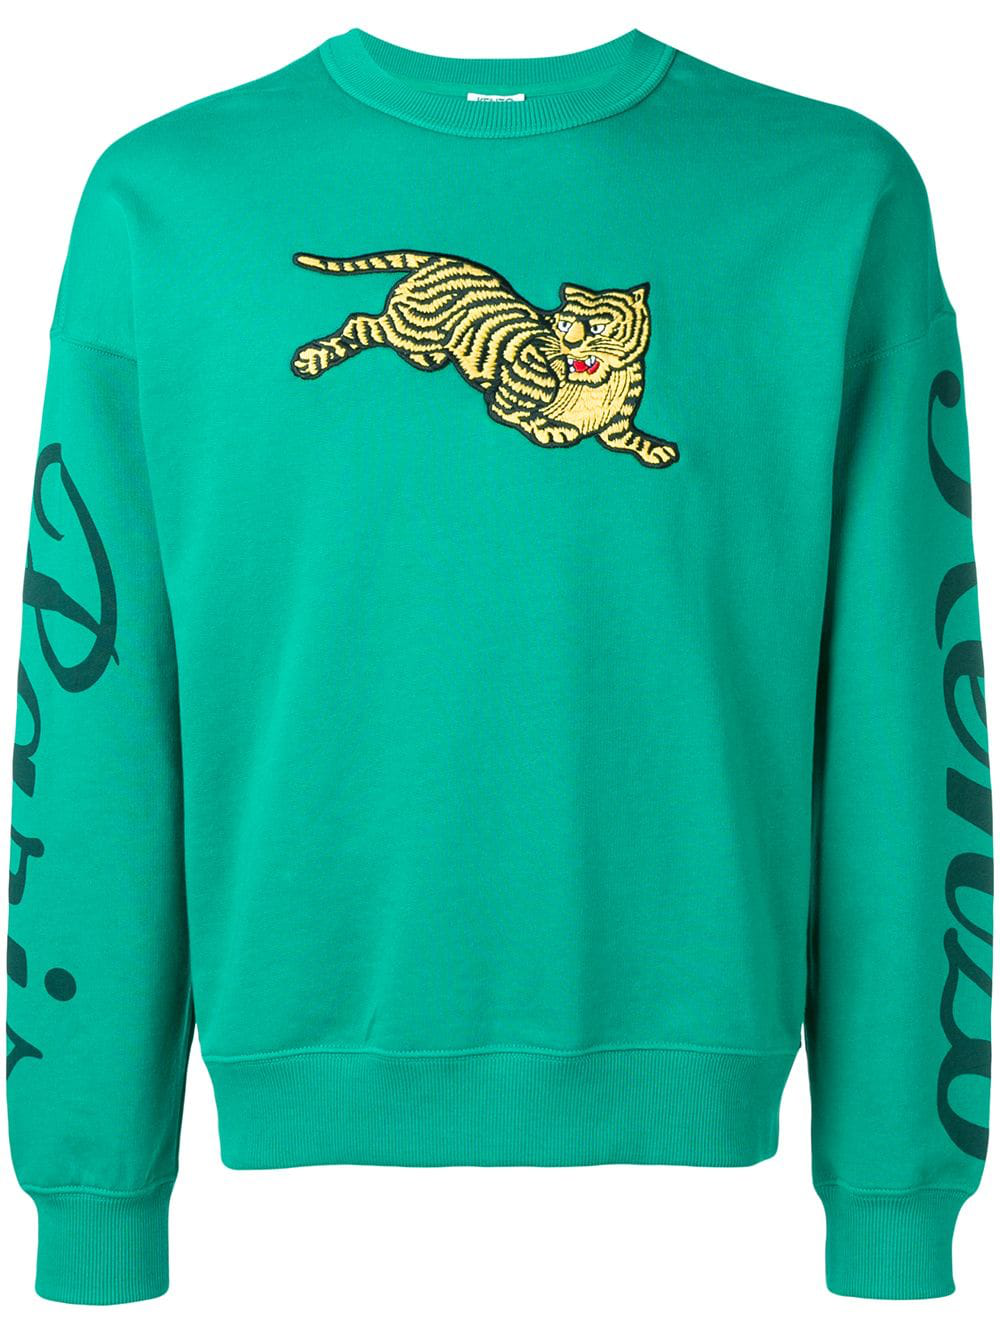 65e07f69 Kenzo Jumping Tiger Sweatshirt In Green | ModeSens